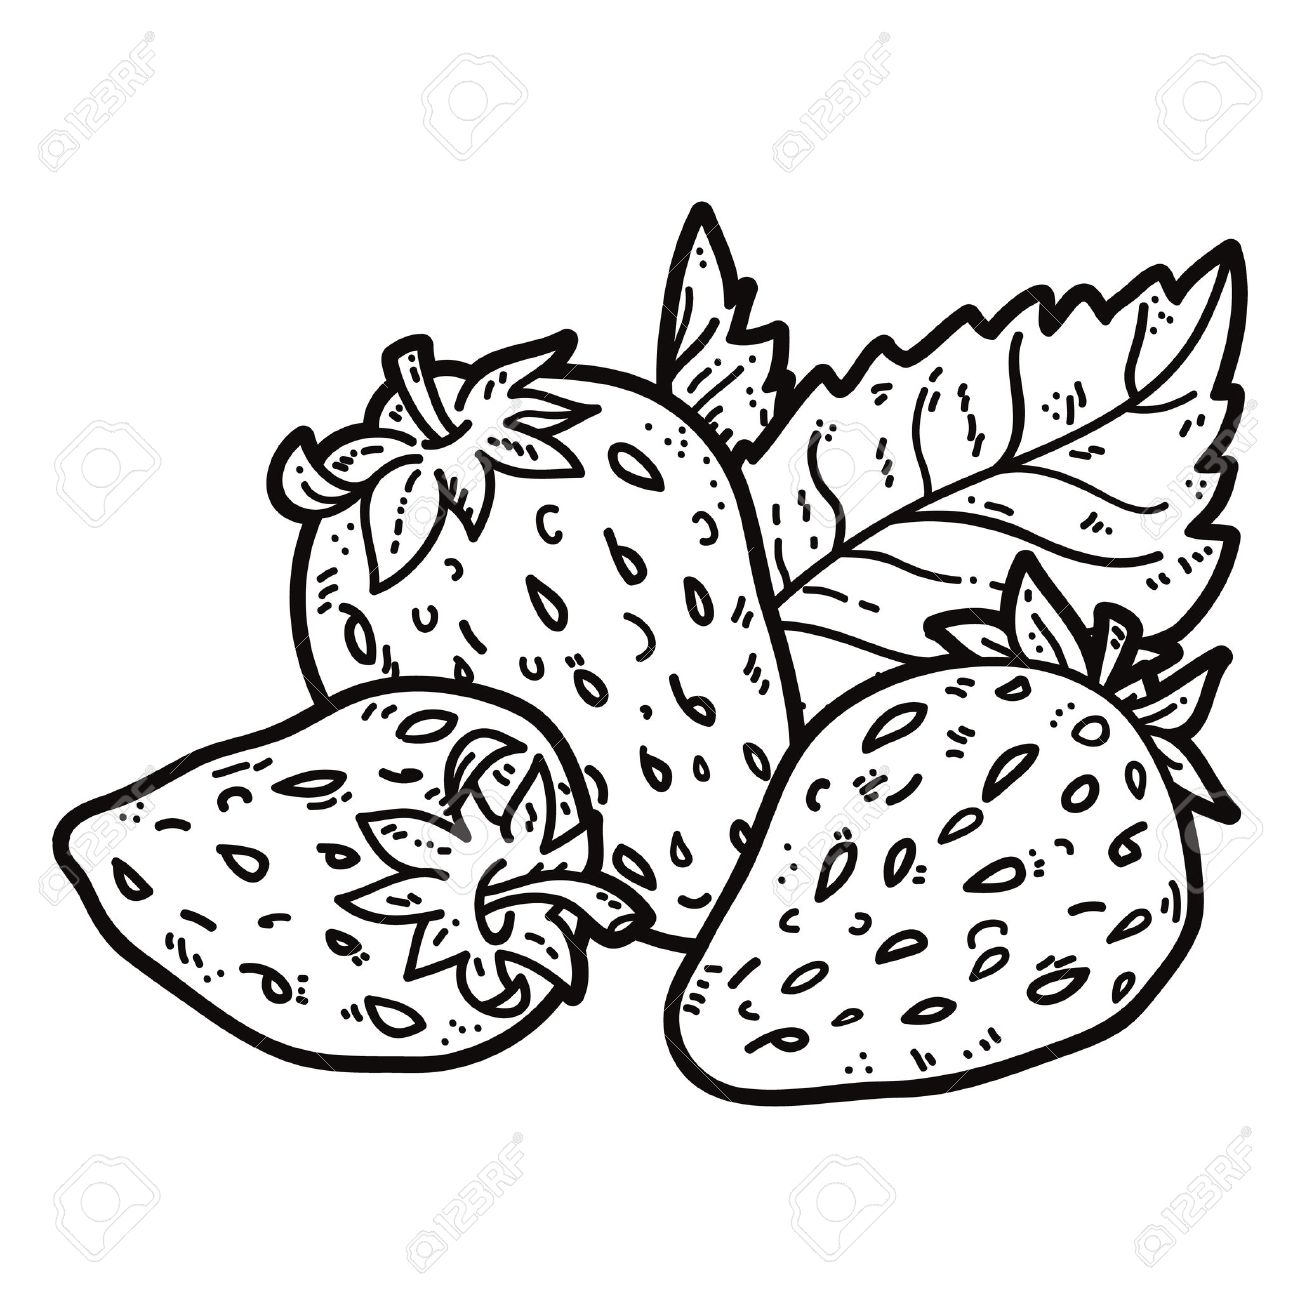 Strawberry Outline Drawing at GetDrawings.com | Free for ...